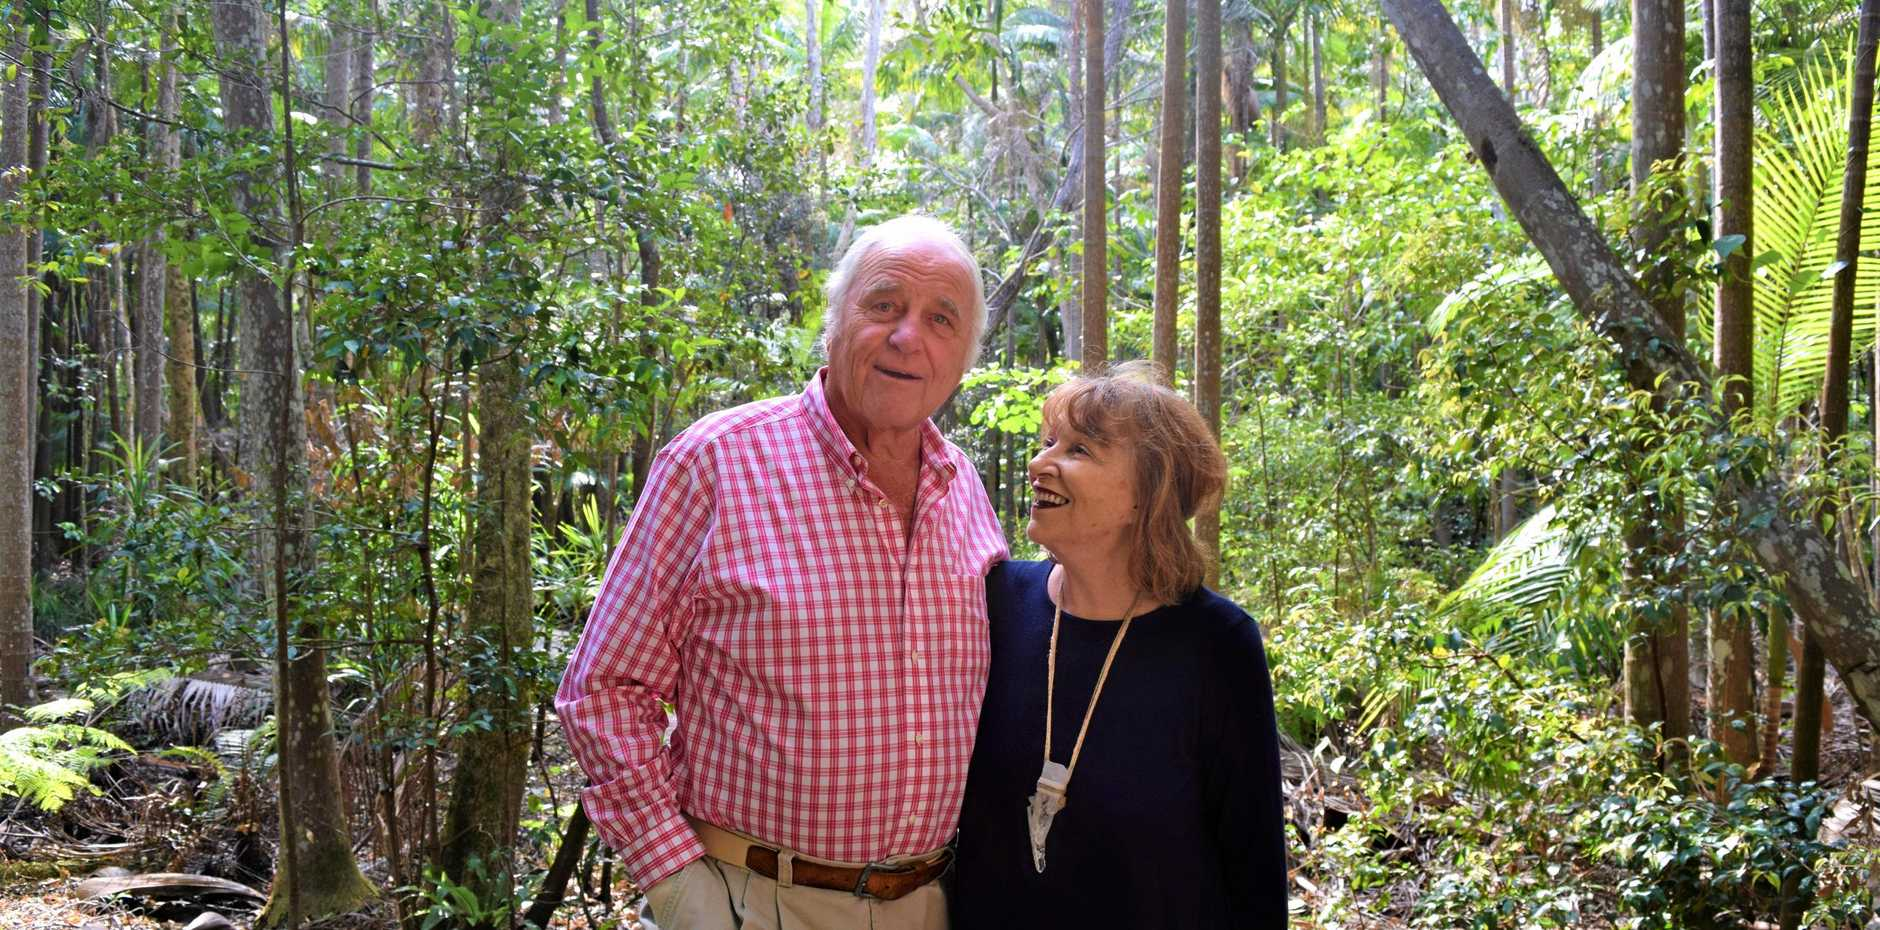 POWER COUPLE: John and Lyn Parche have retired from the Byron at Byron resort and Spa after 15 years of welcoming visitors.